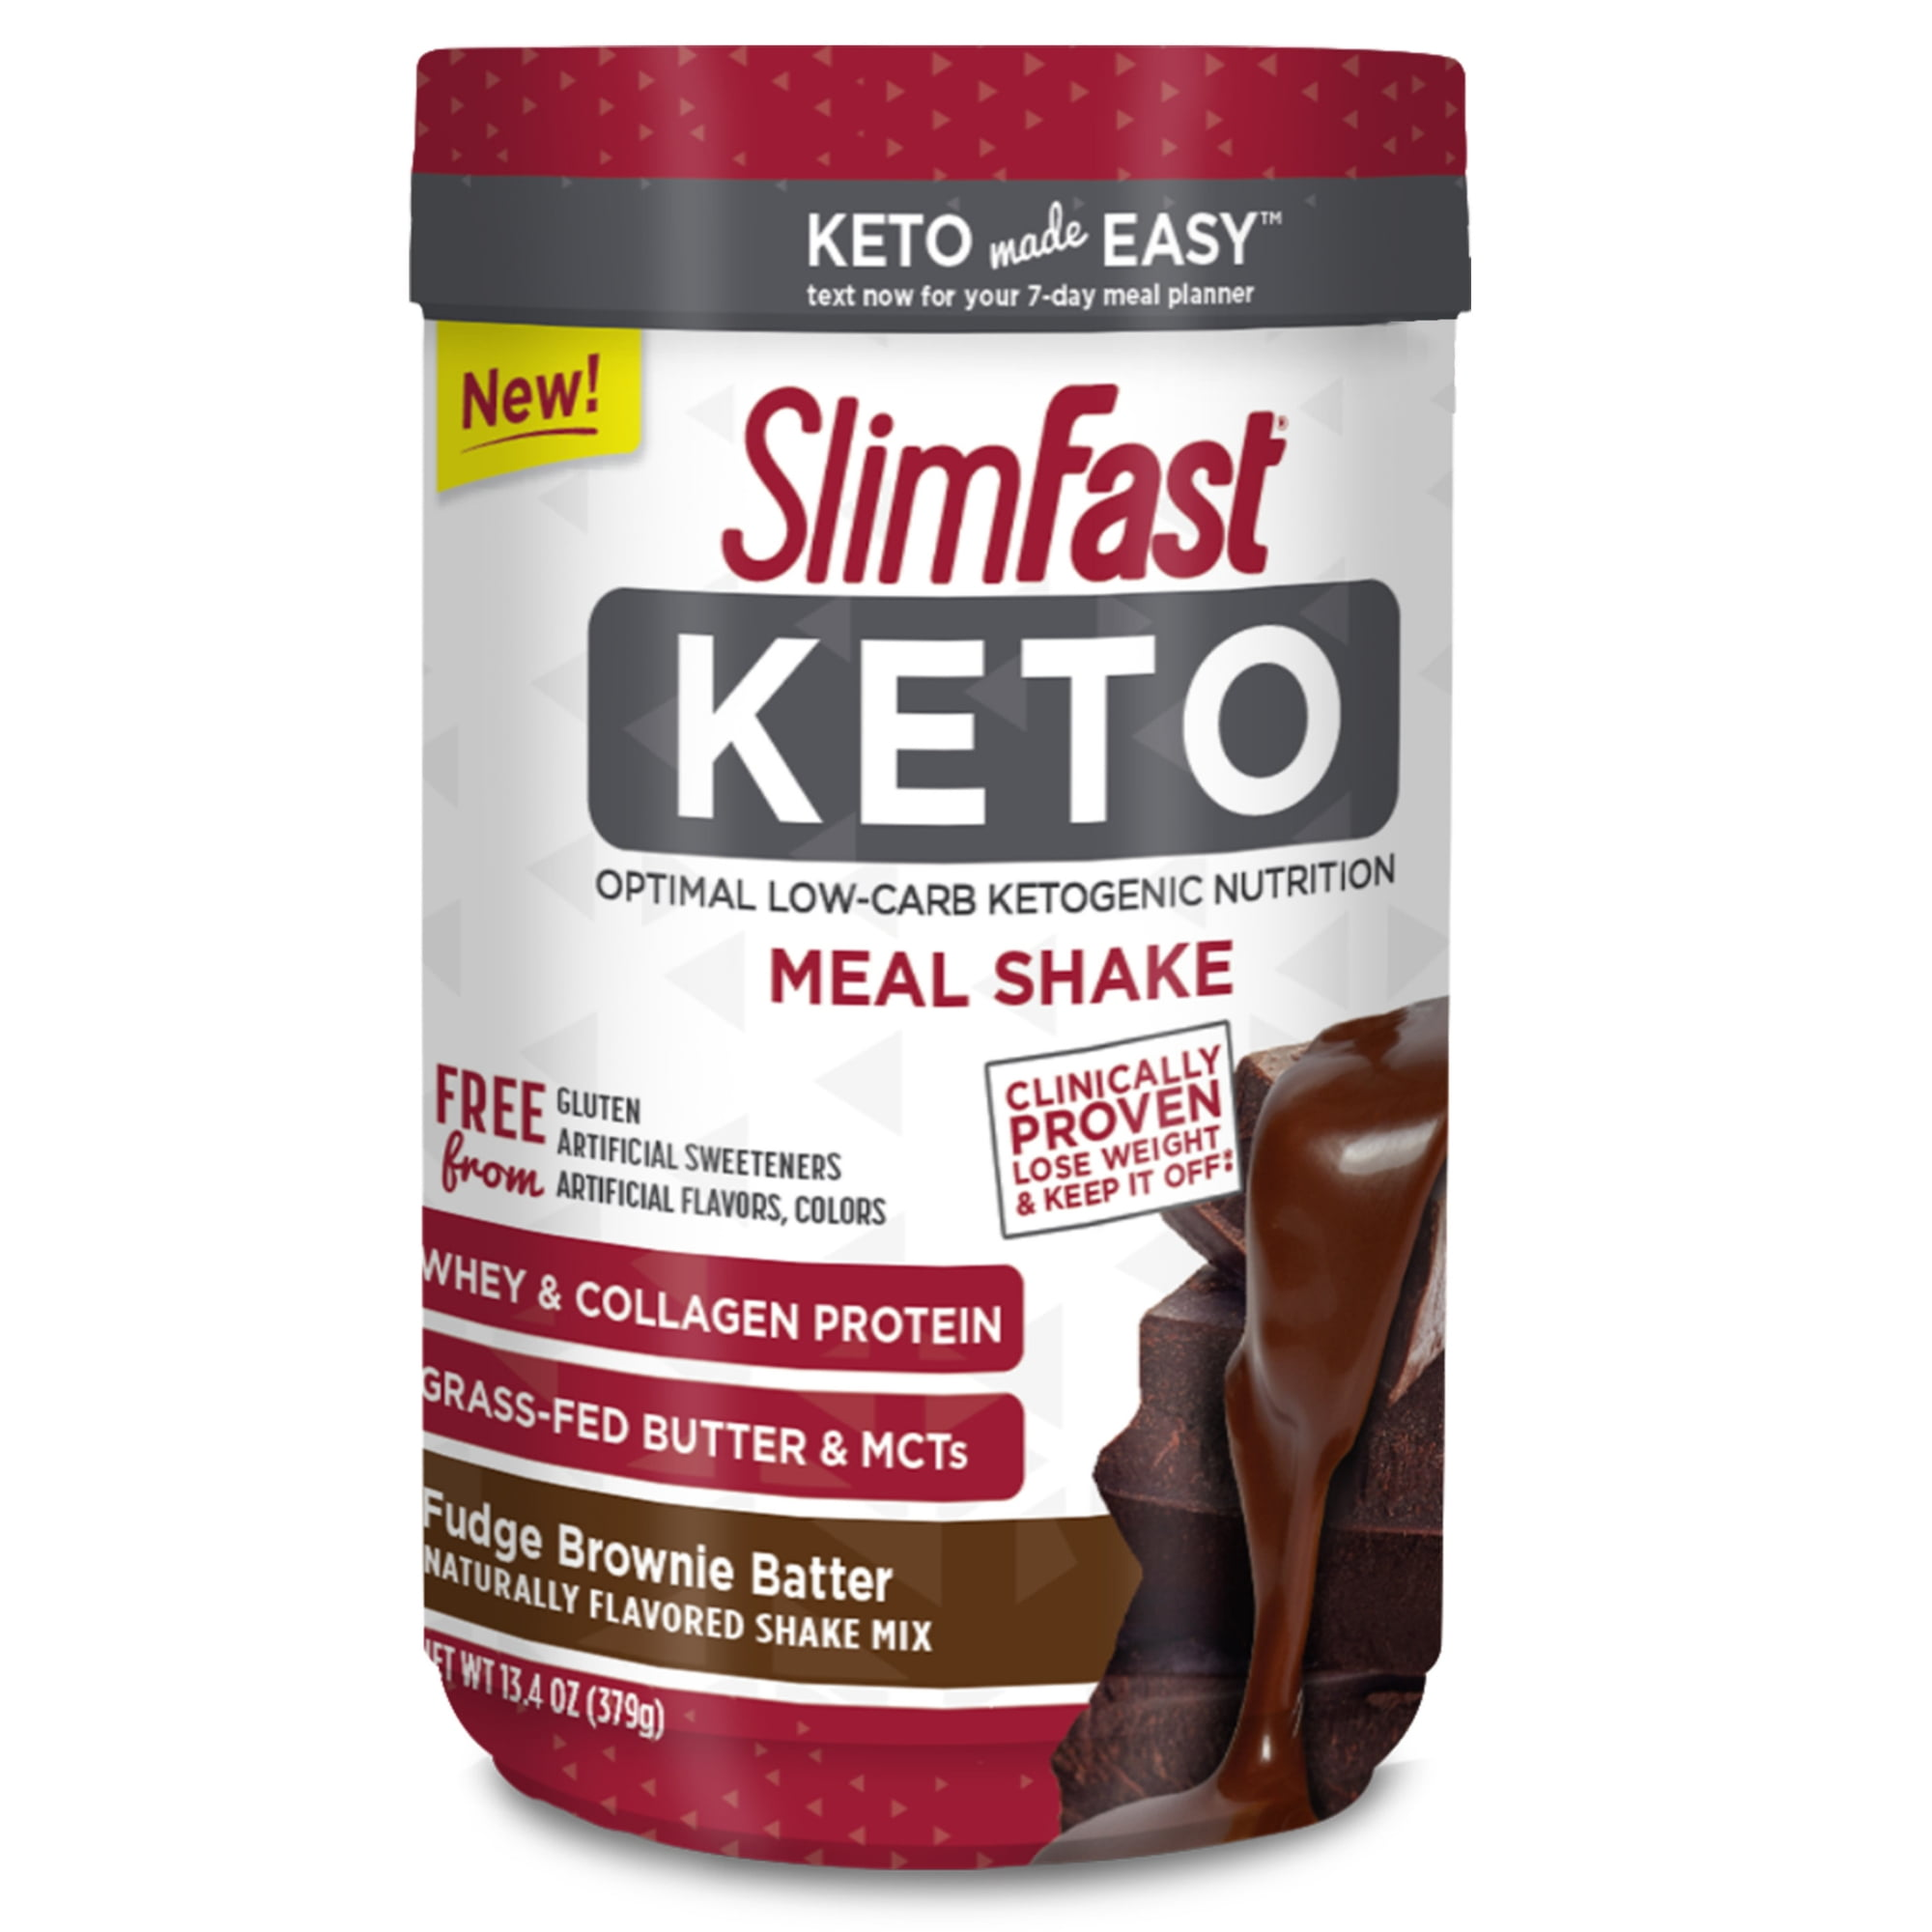 Can you have slimfast on keto diet